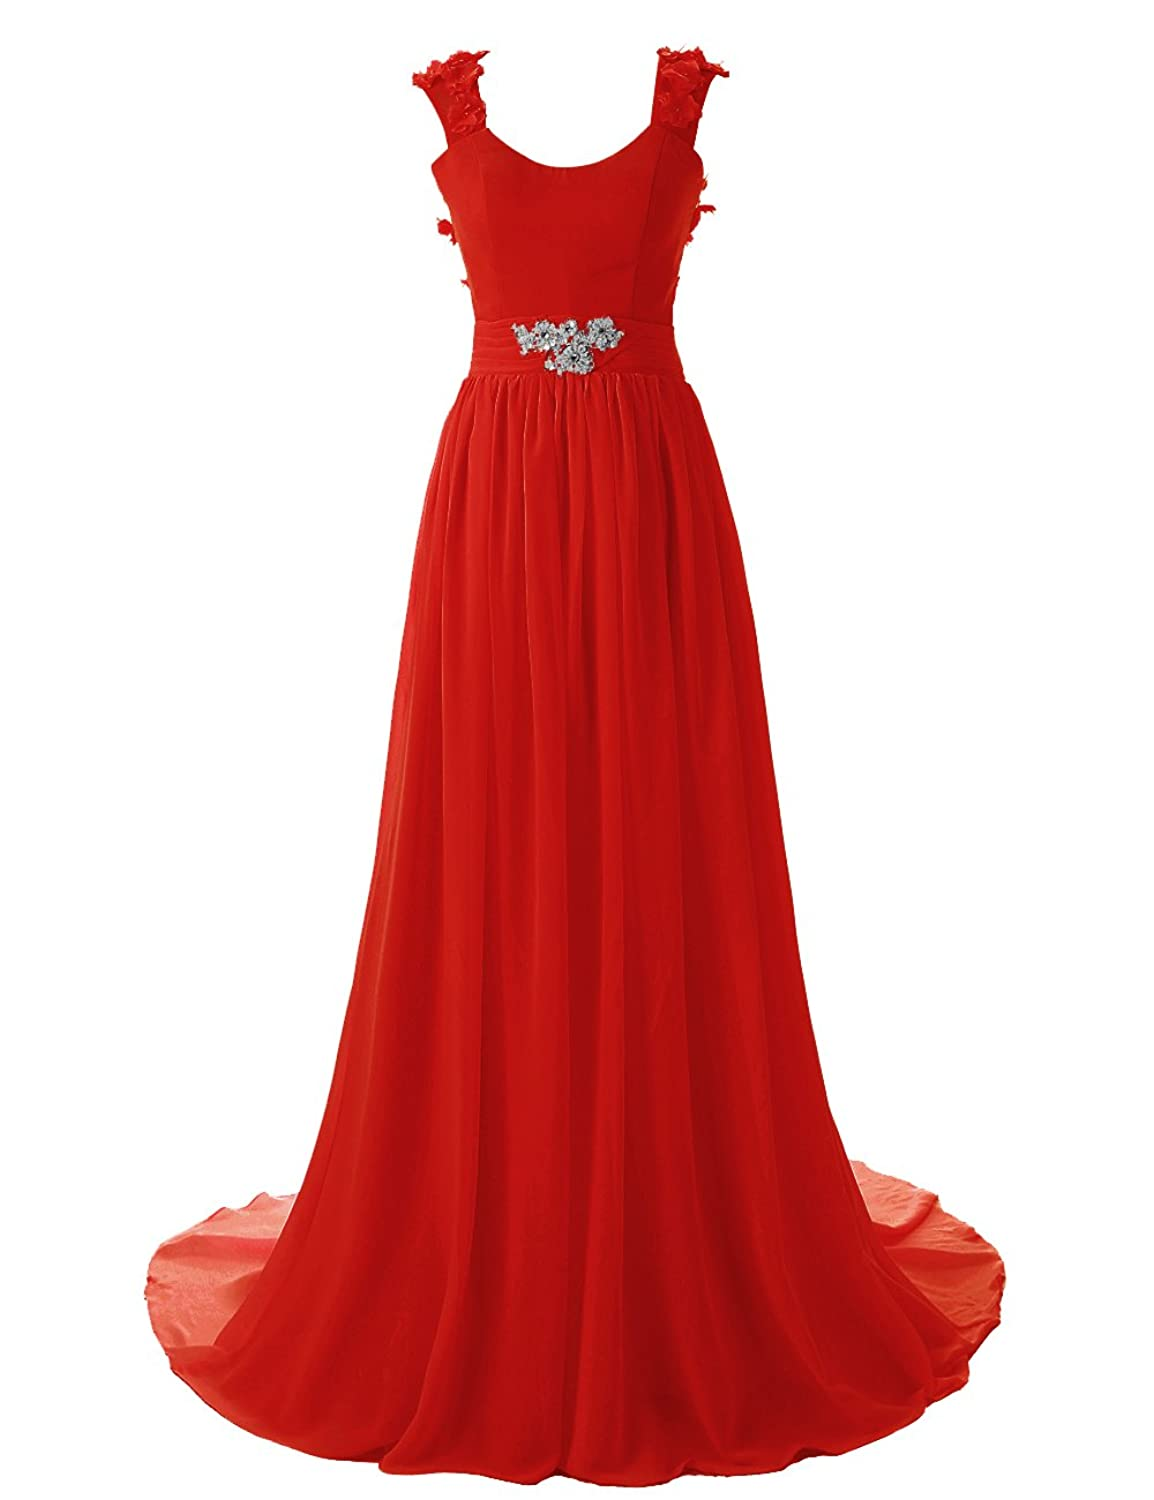 Dressystar Bodenlanges elegantes Ballkleid fashion Brautjungkleid Chiffon Rot in Gr??e 46W